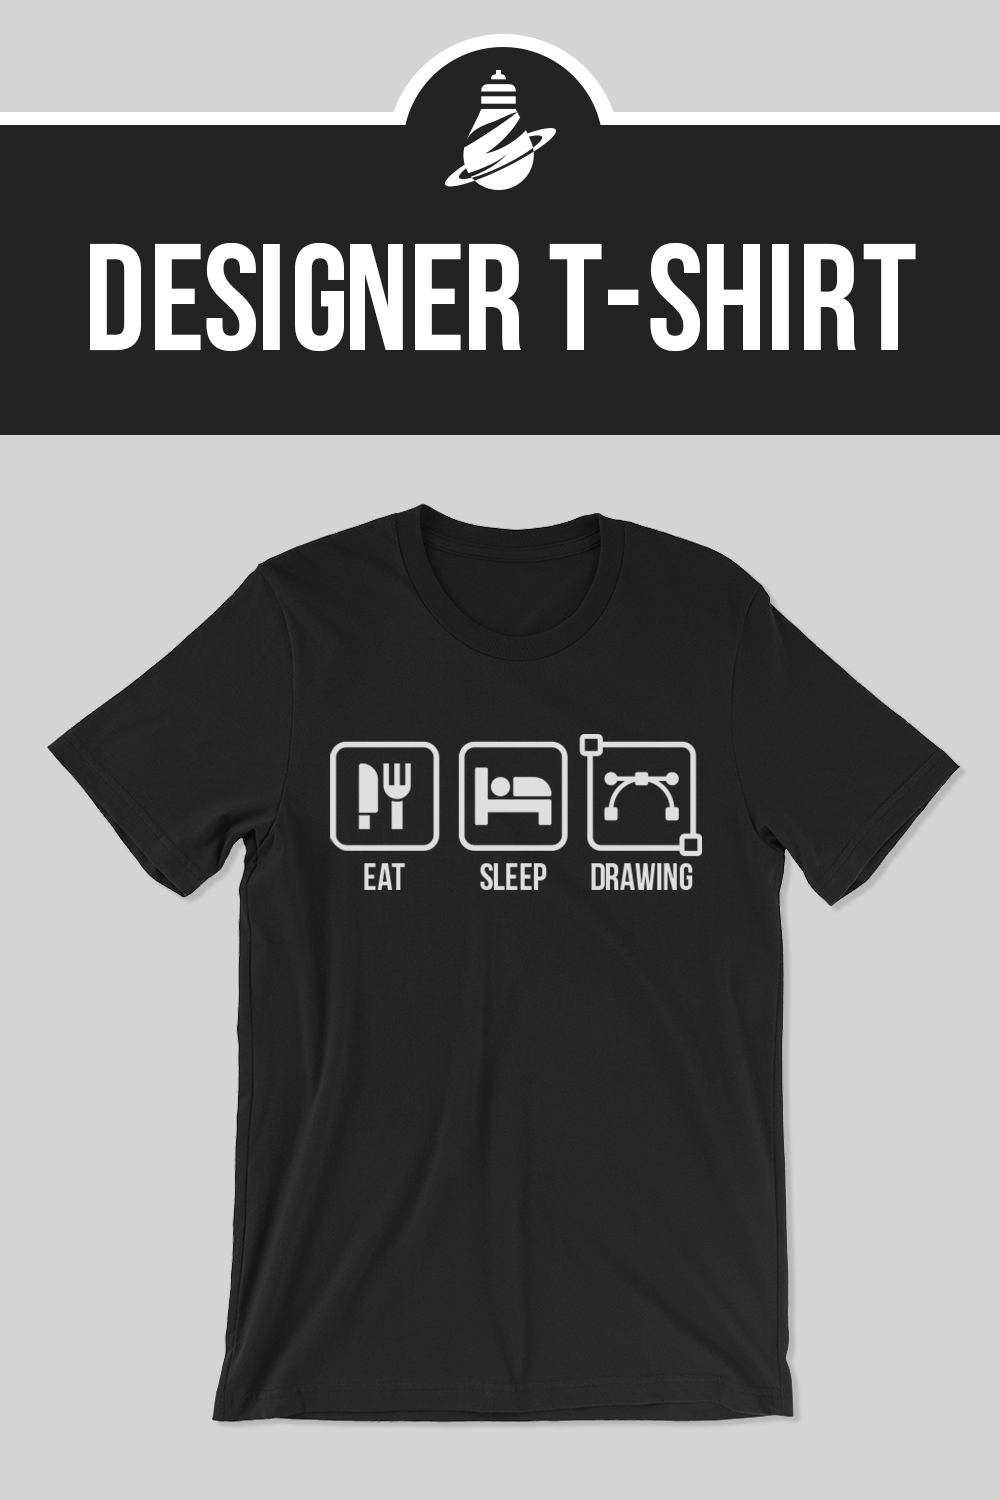 e27a354dfe19c Funny graphic designer illustration T-shirt. Wear Cute and awesome T-shirts  to look epic.  feelington